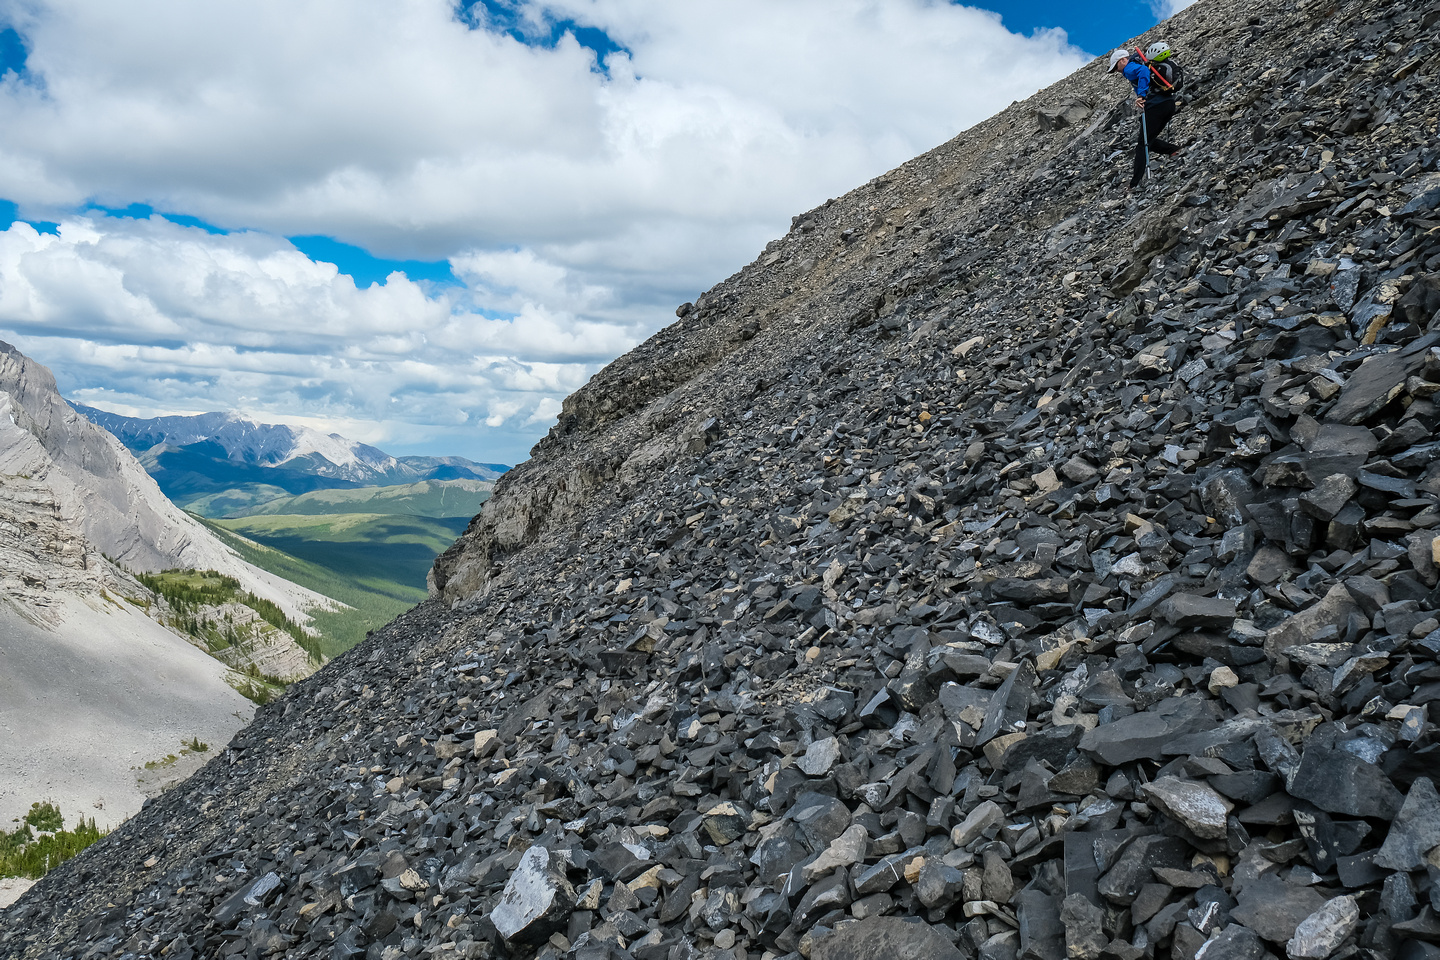 Continuing down steep scree slopes into a small hanging valley.